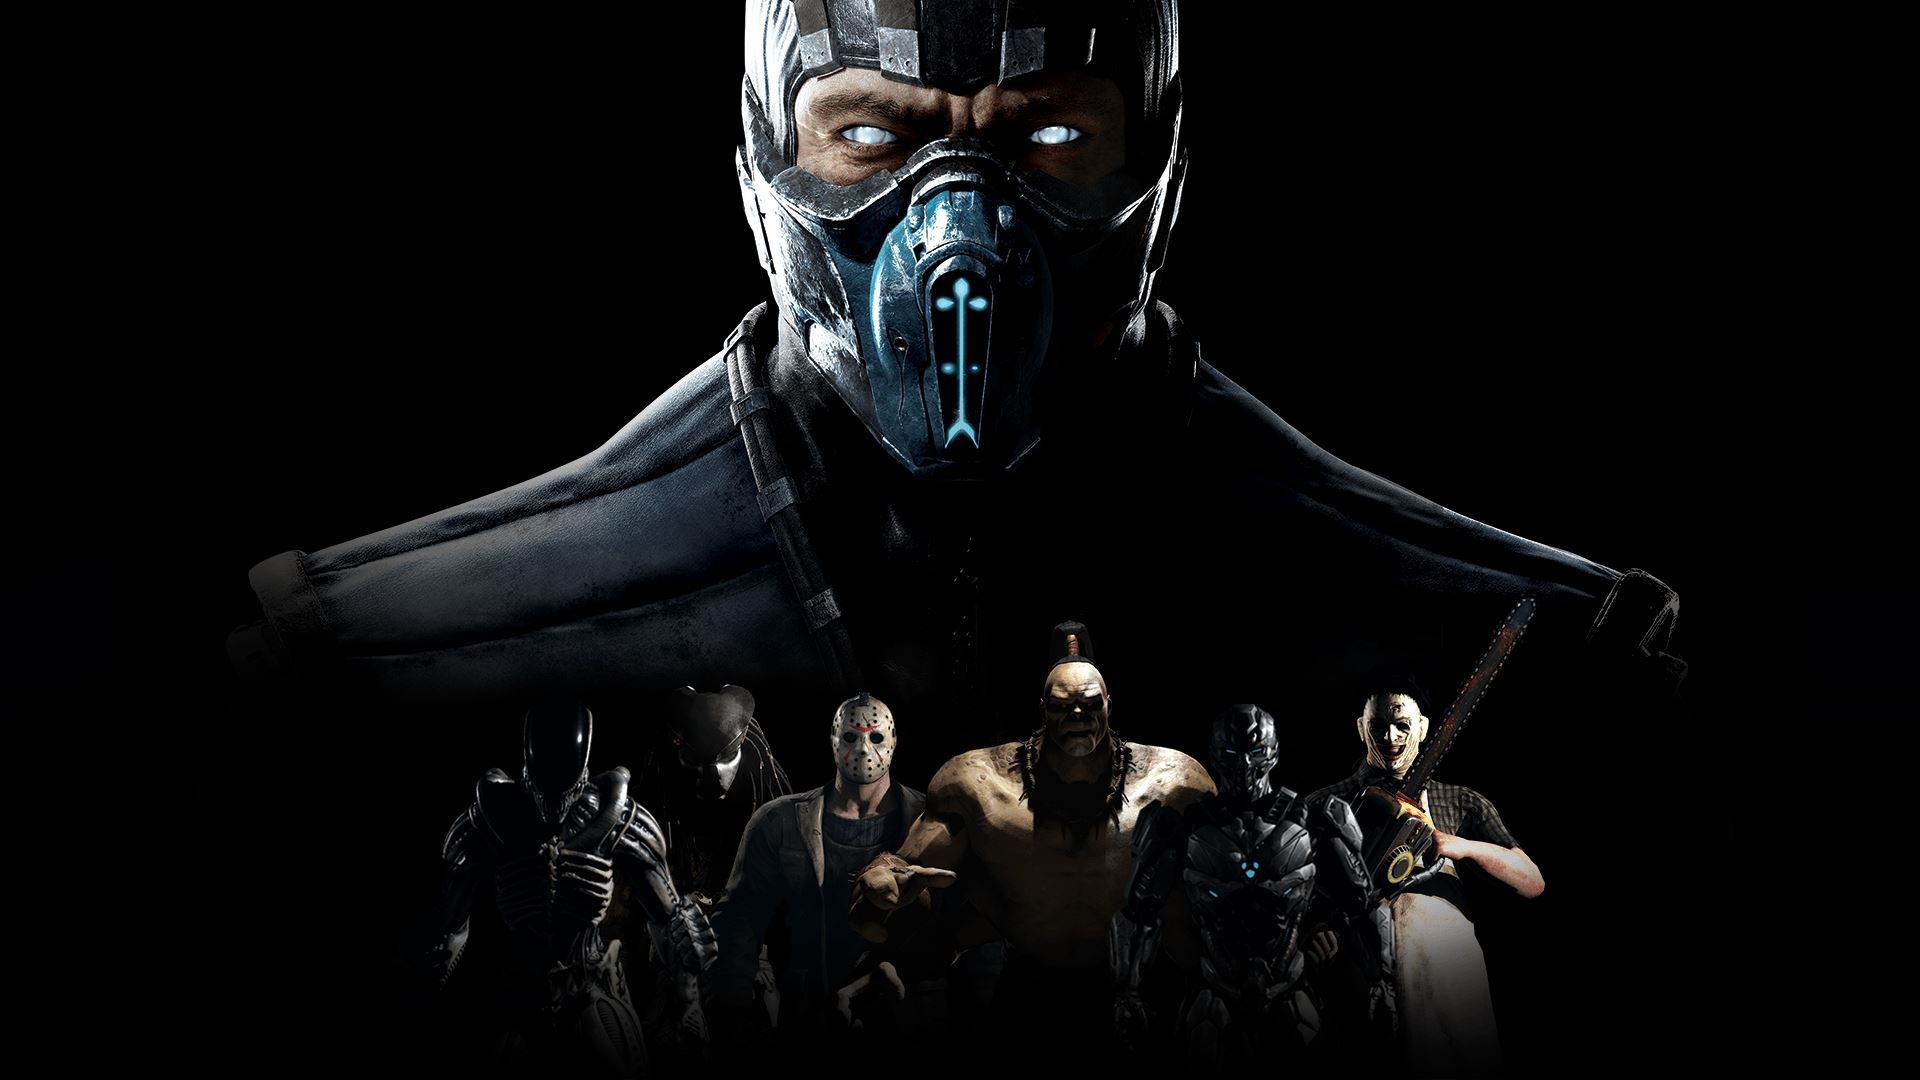 Mortal Kombat X HD Wallpapers and Background Images   stmednet 1920x1080